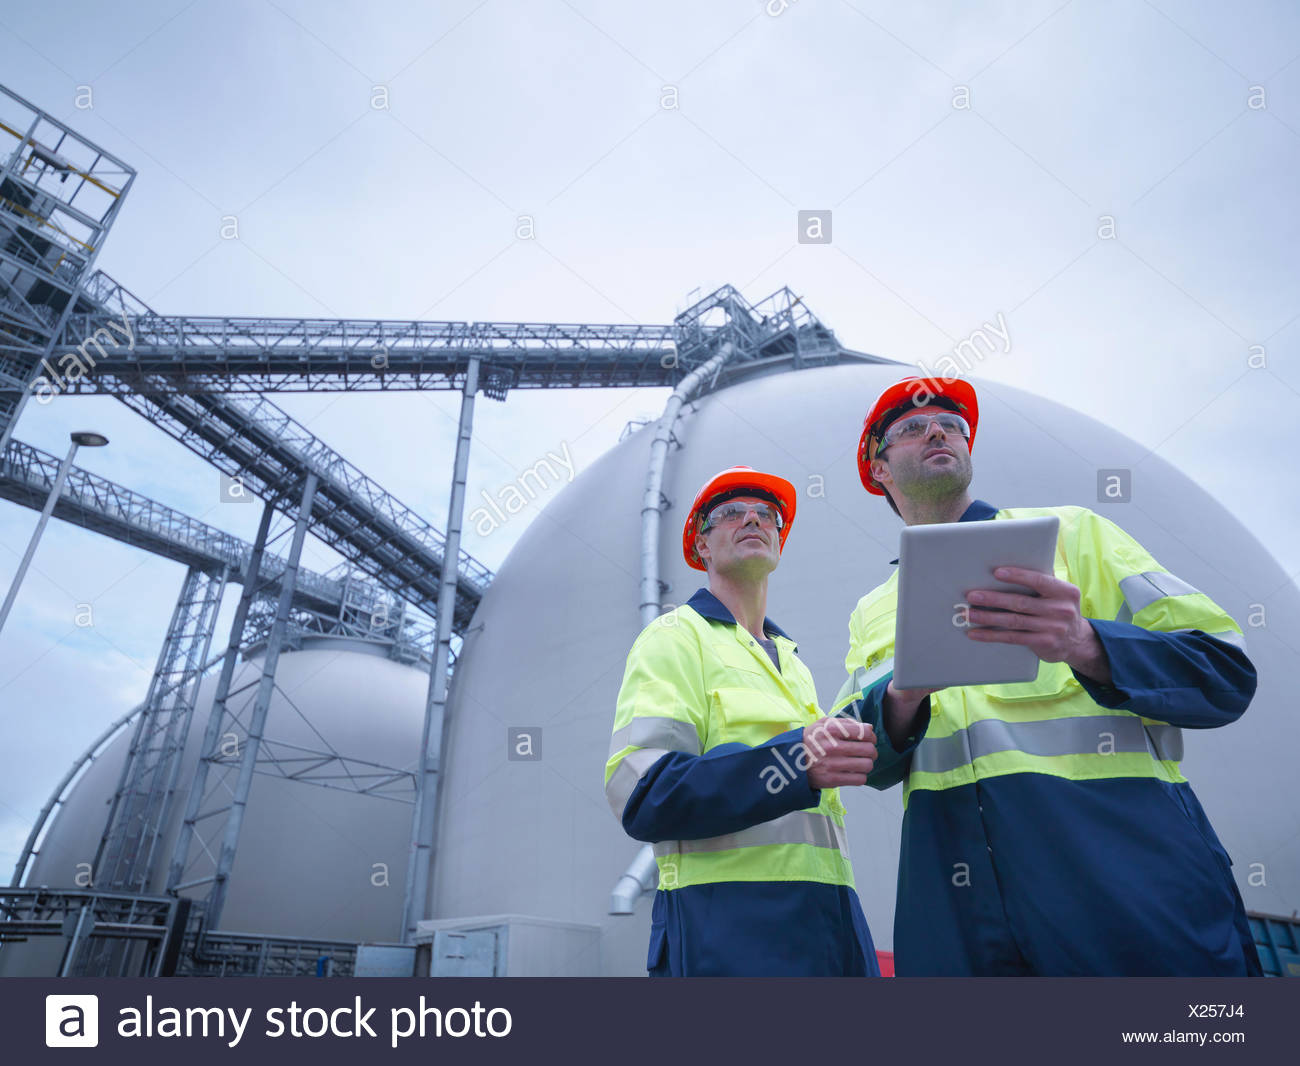 Workers using digital tablet at biomass facility, low angle view - Stock Image